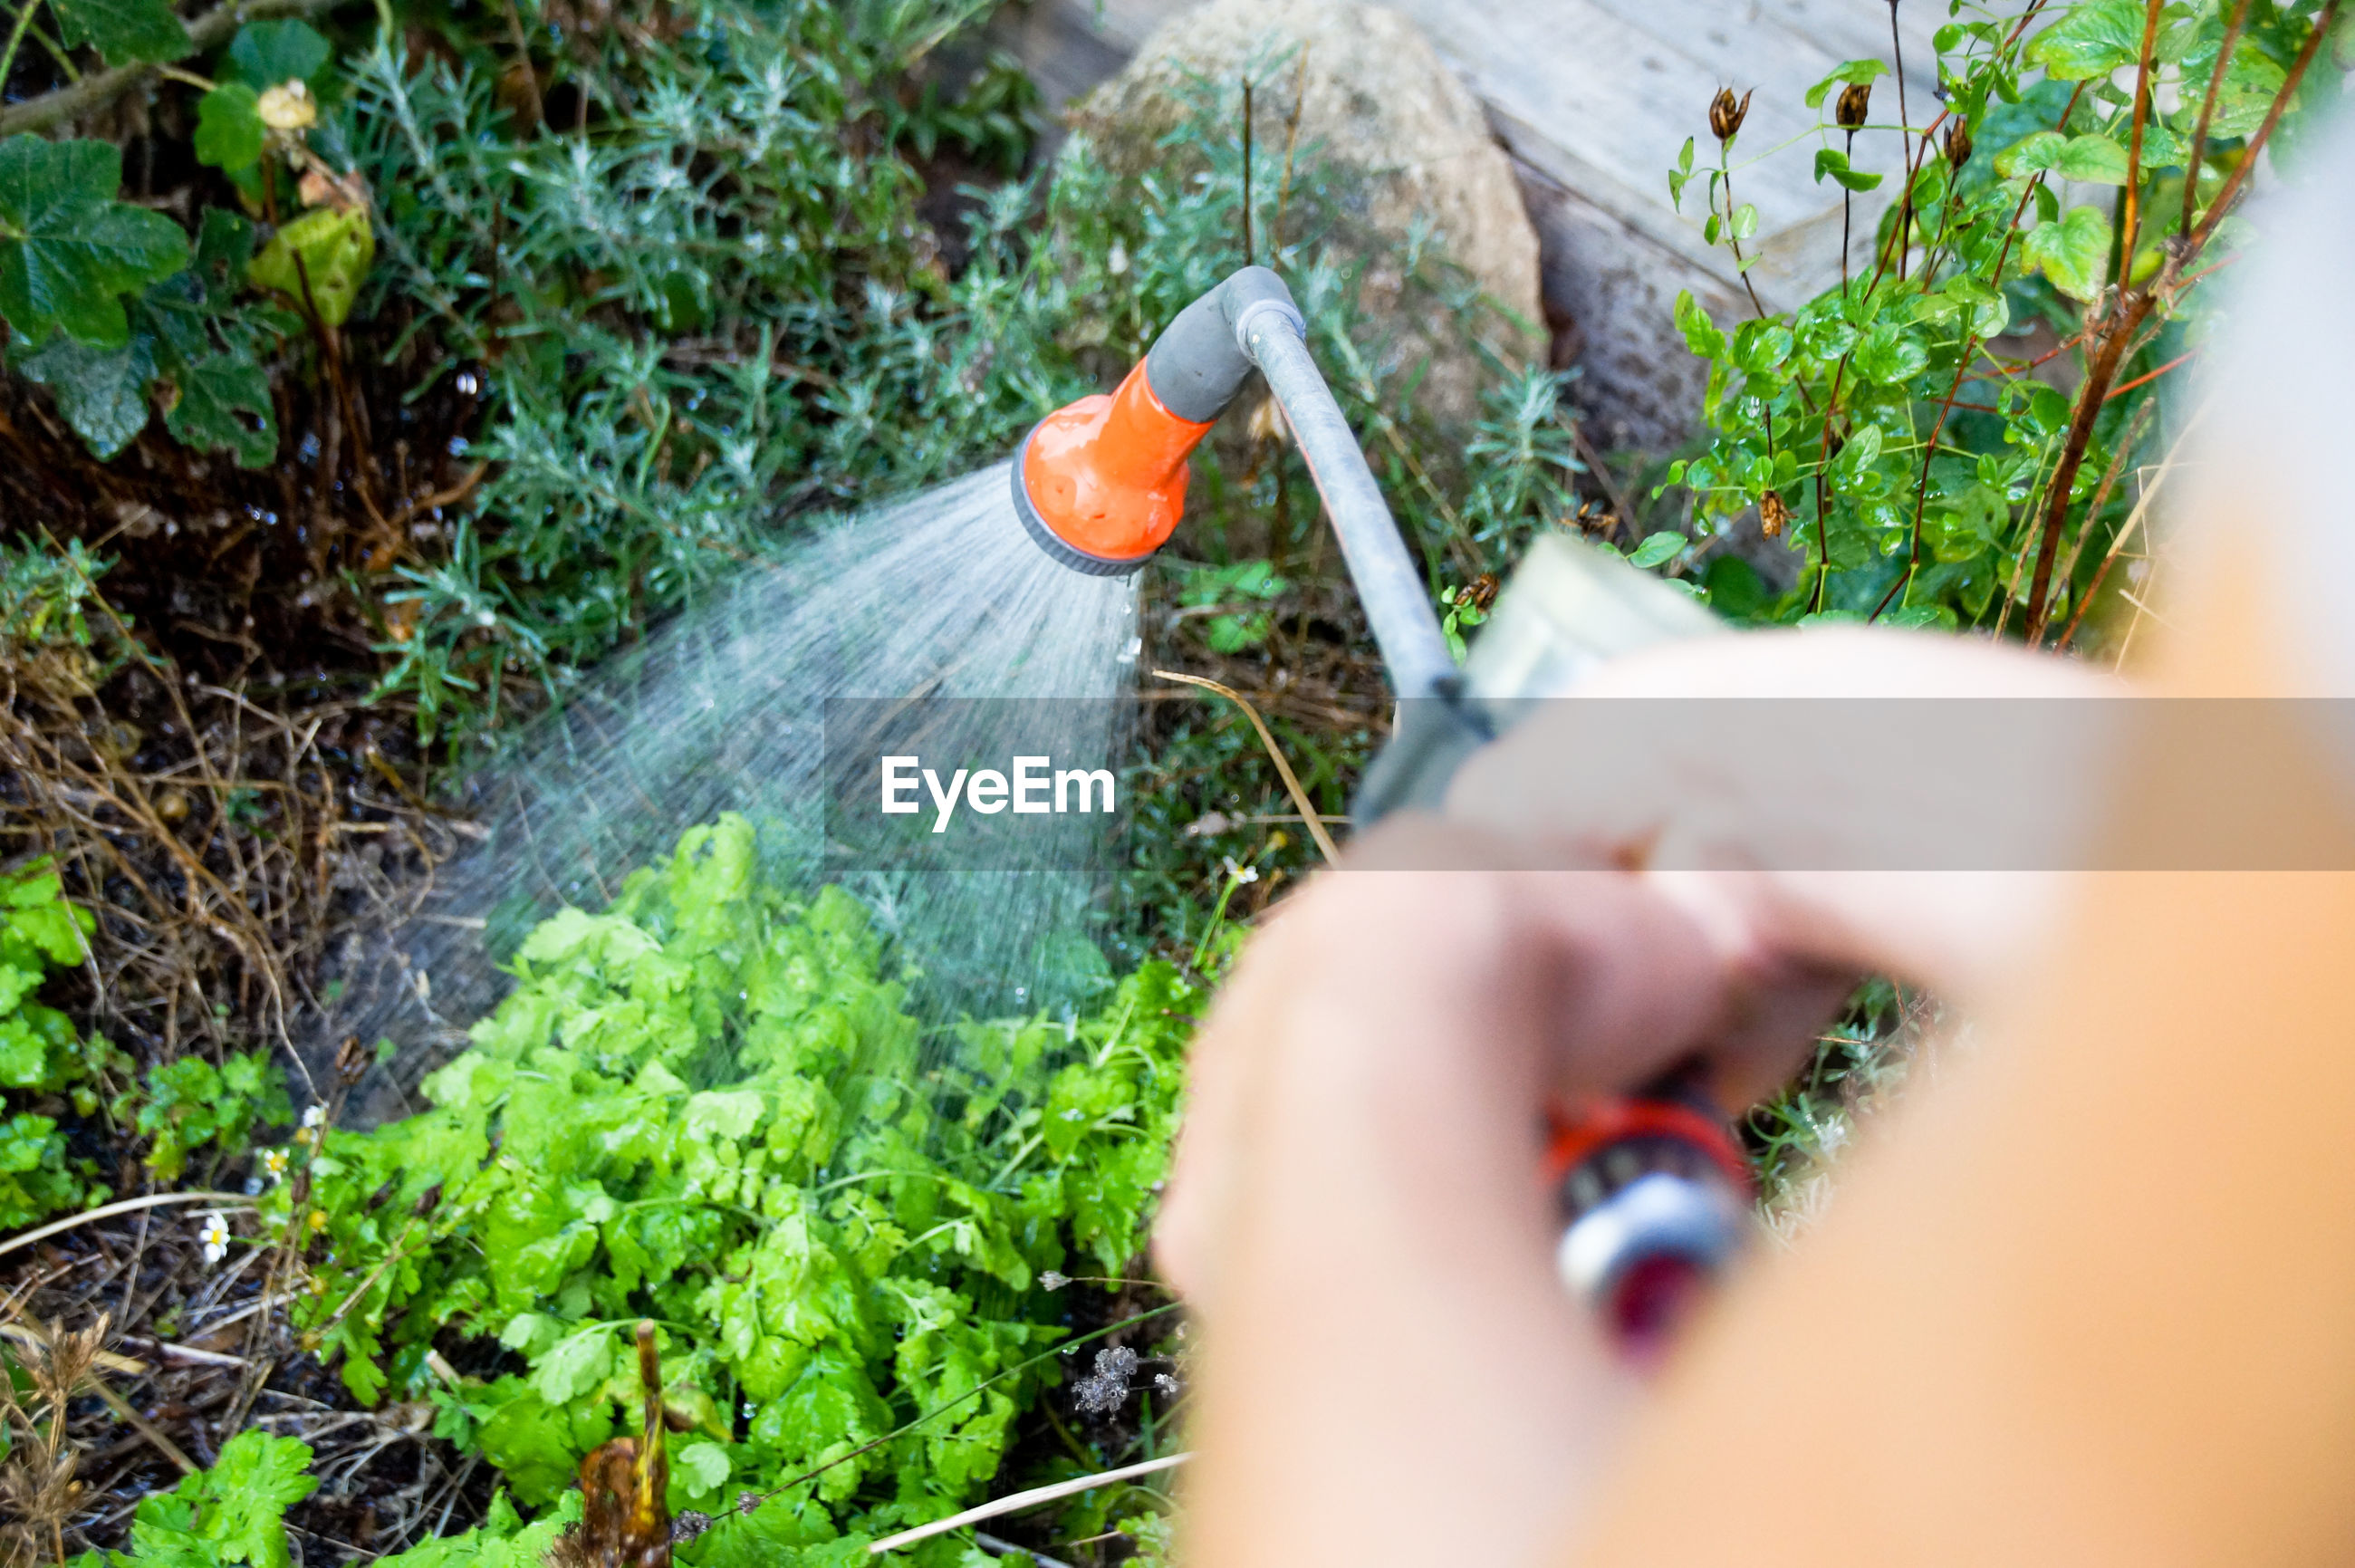 Cropped image of woman spraying water on plants